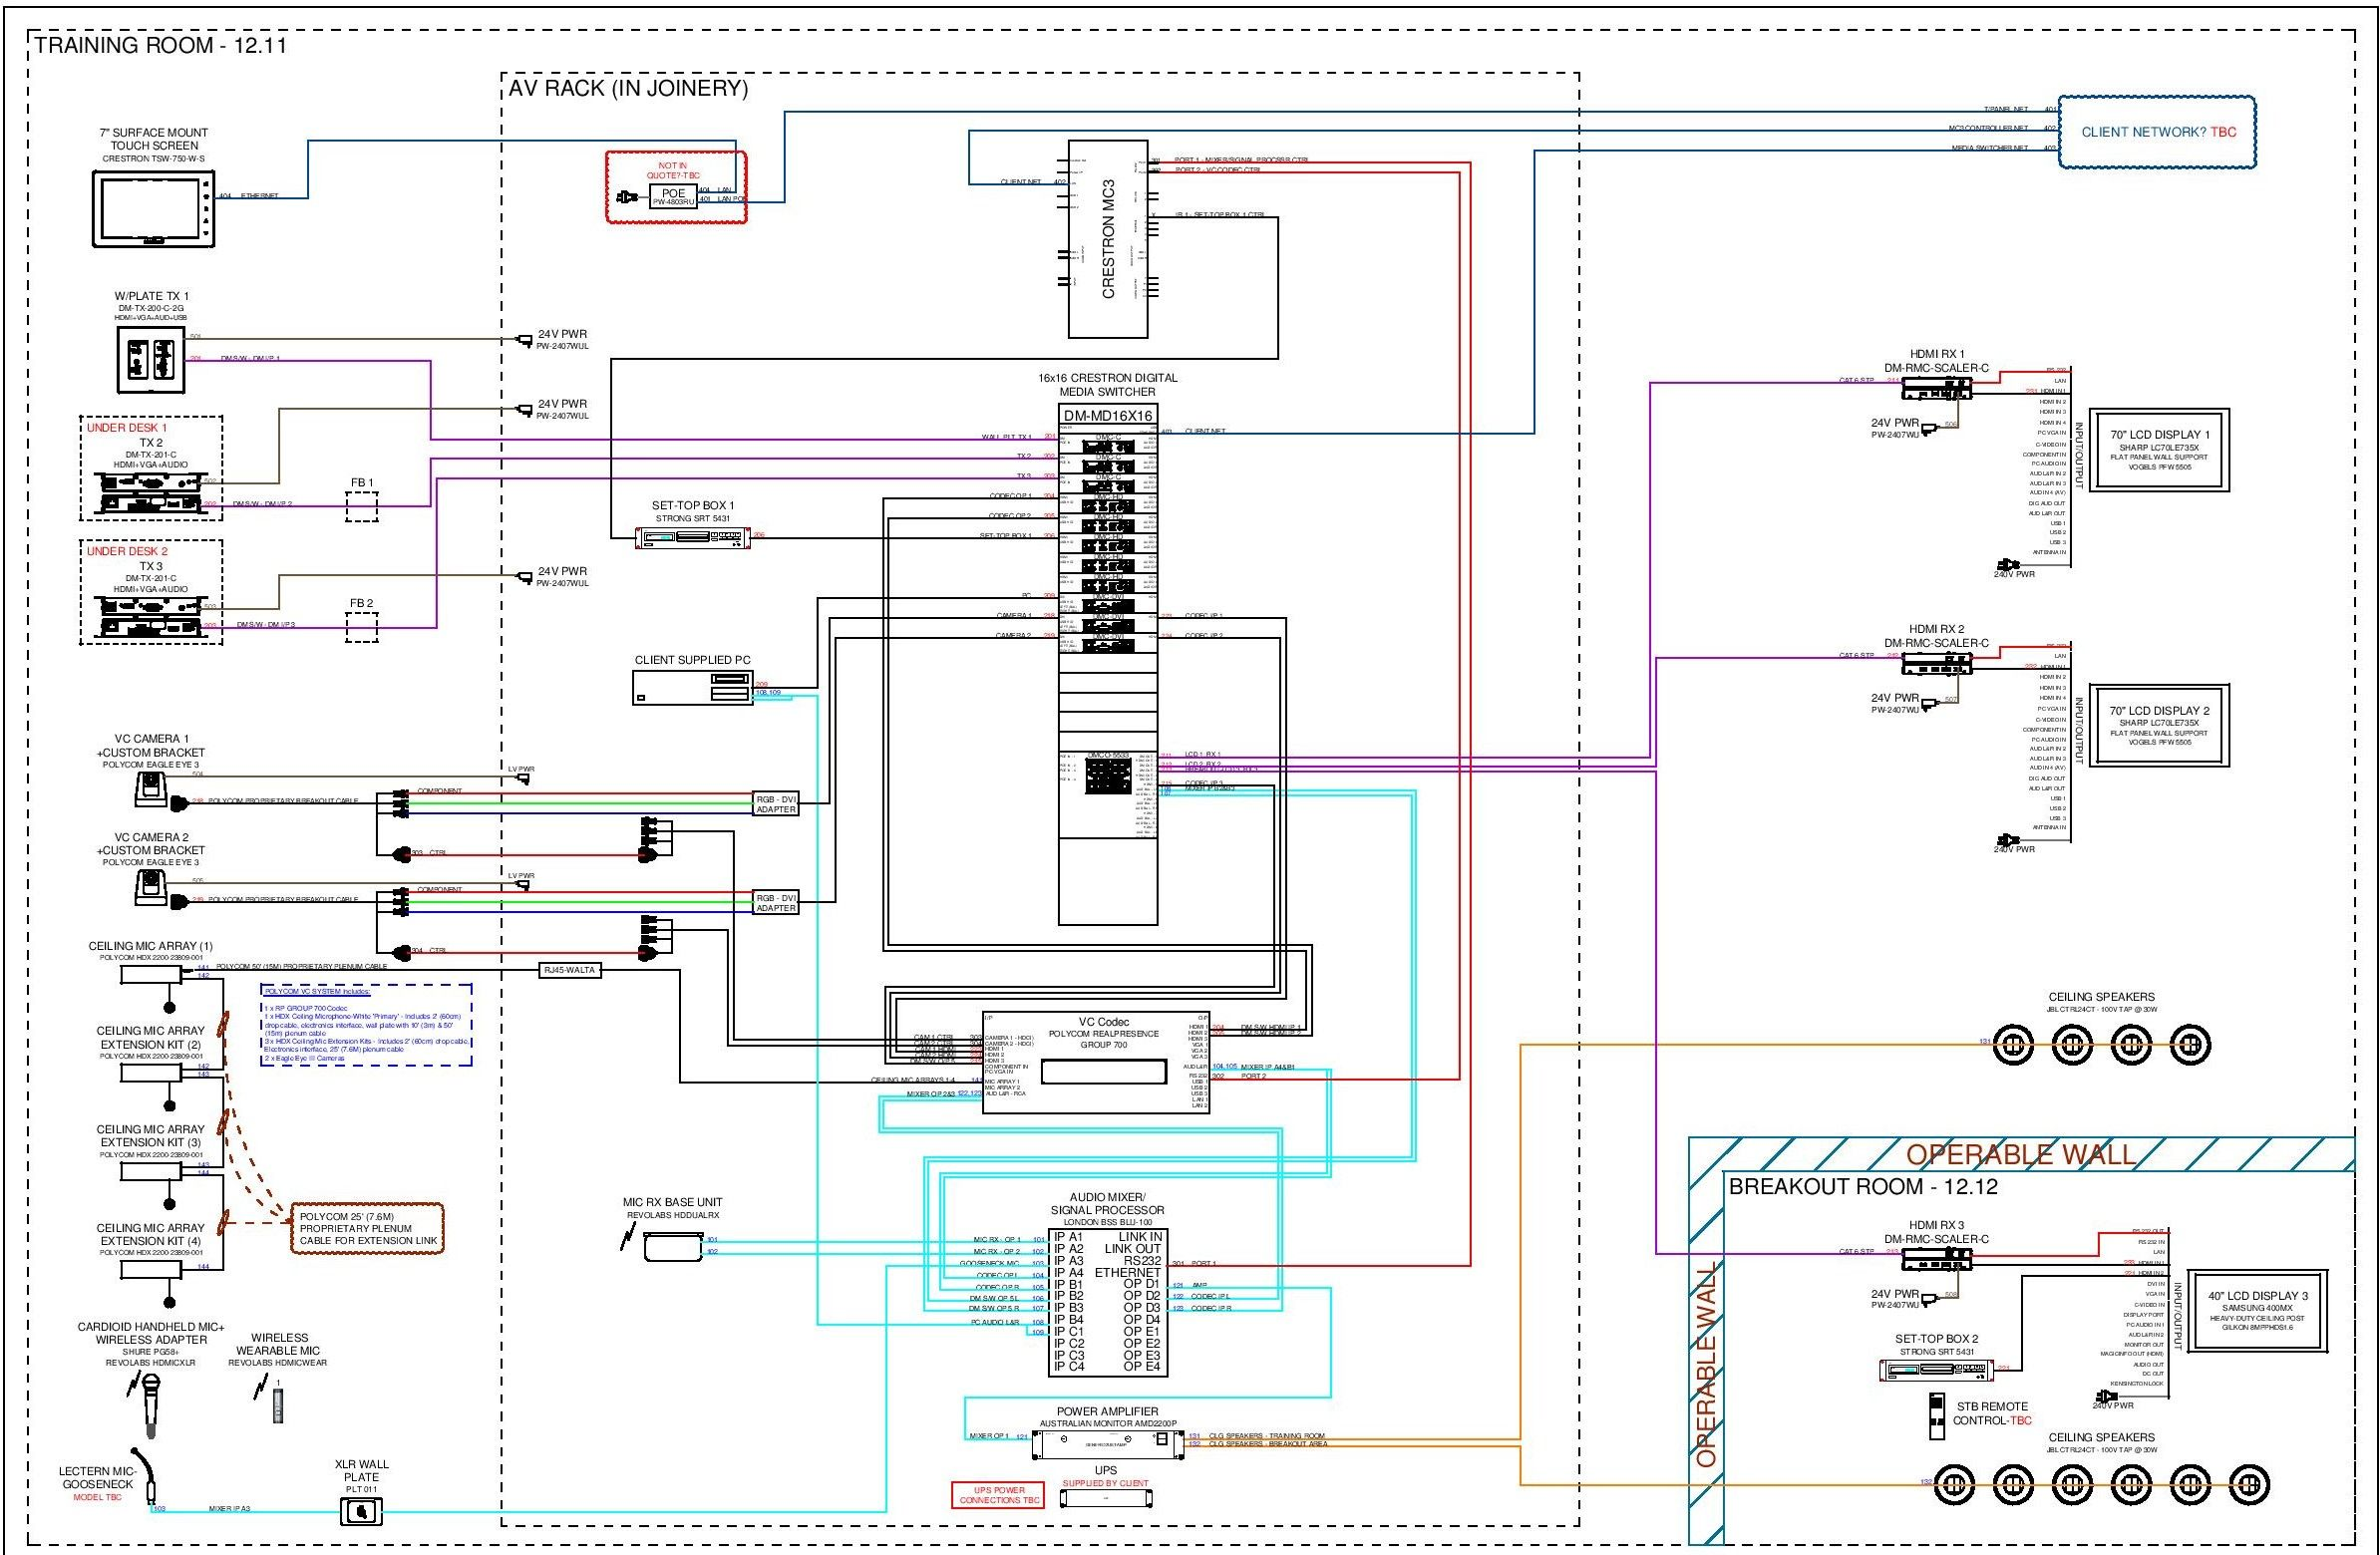 AV Wiring schematic  Training room system with Operable